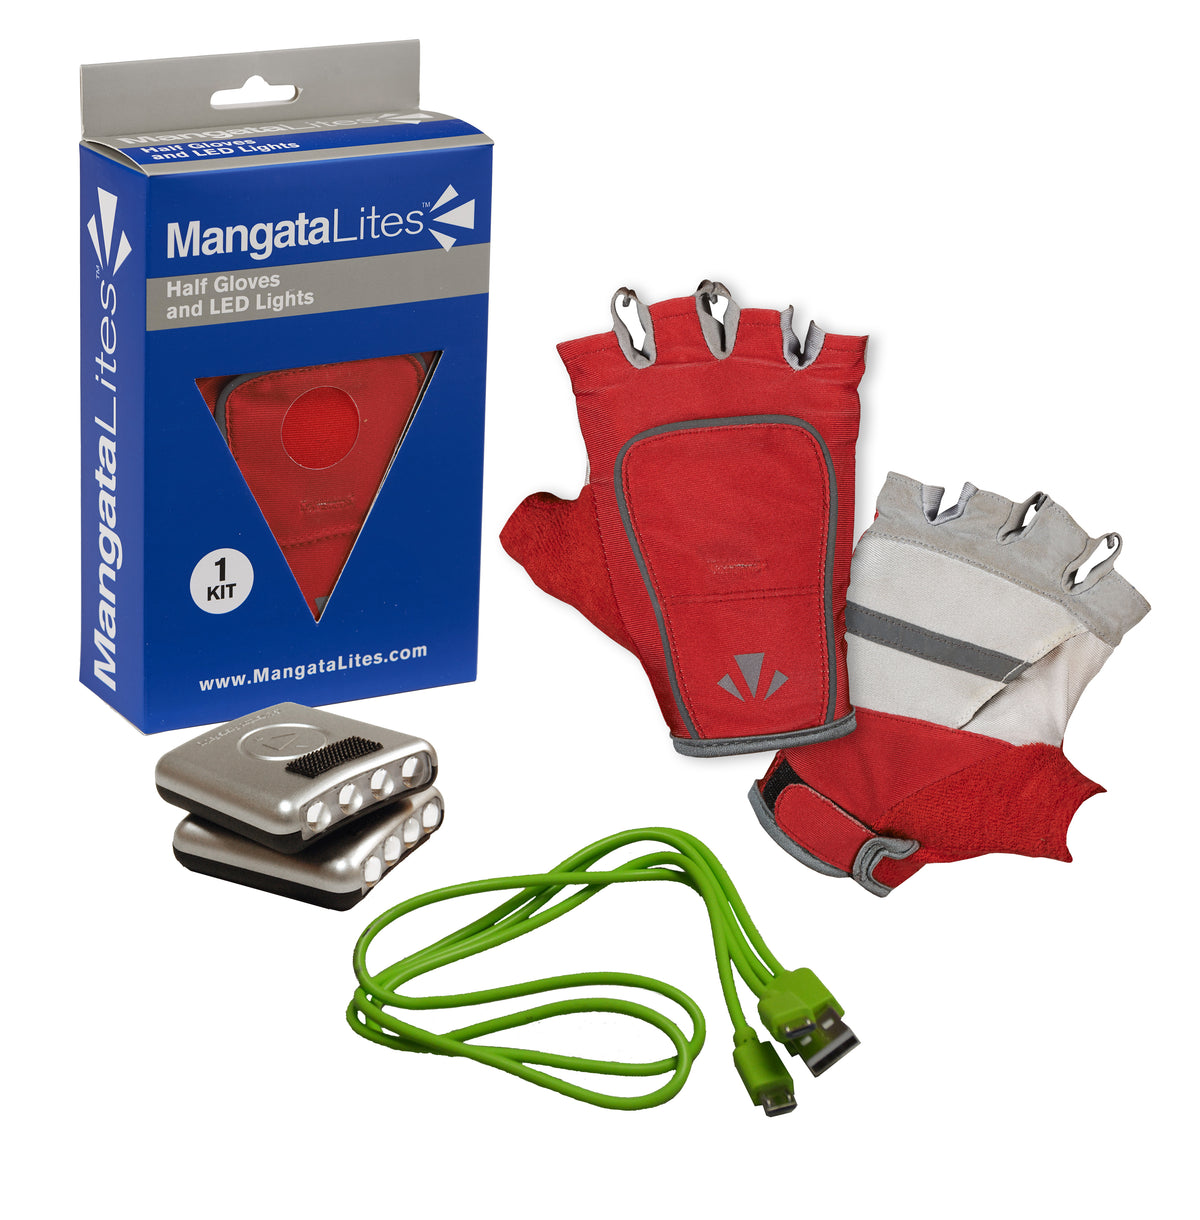 MangataLites Red & White Half Gloves Kit